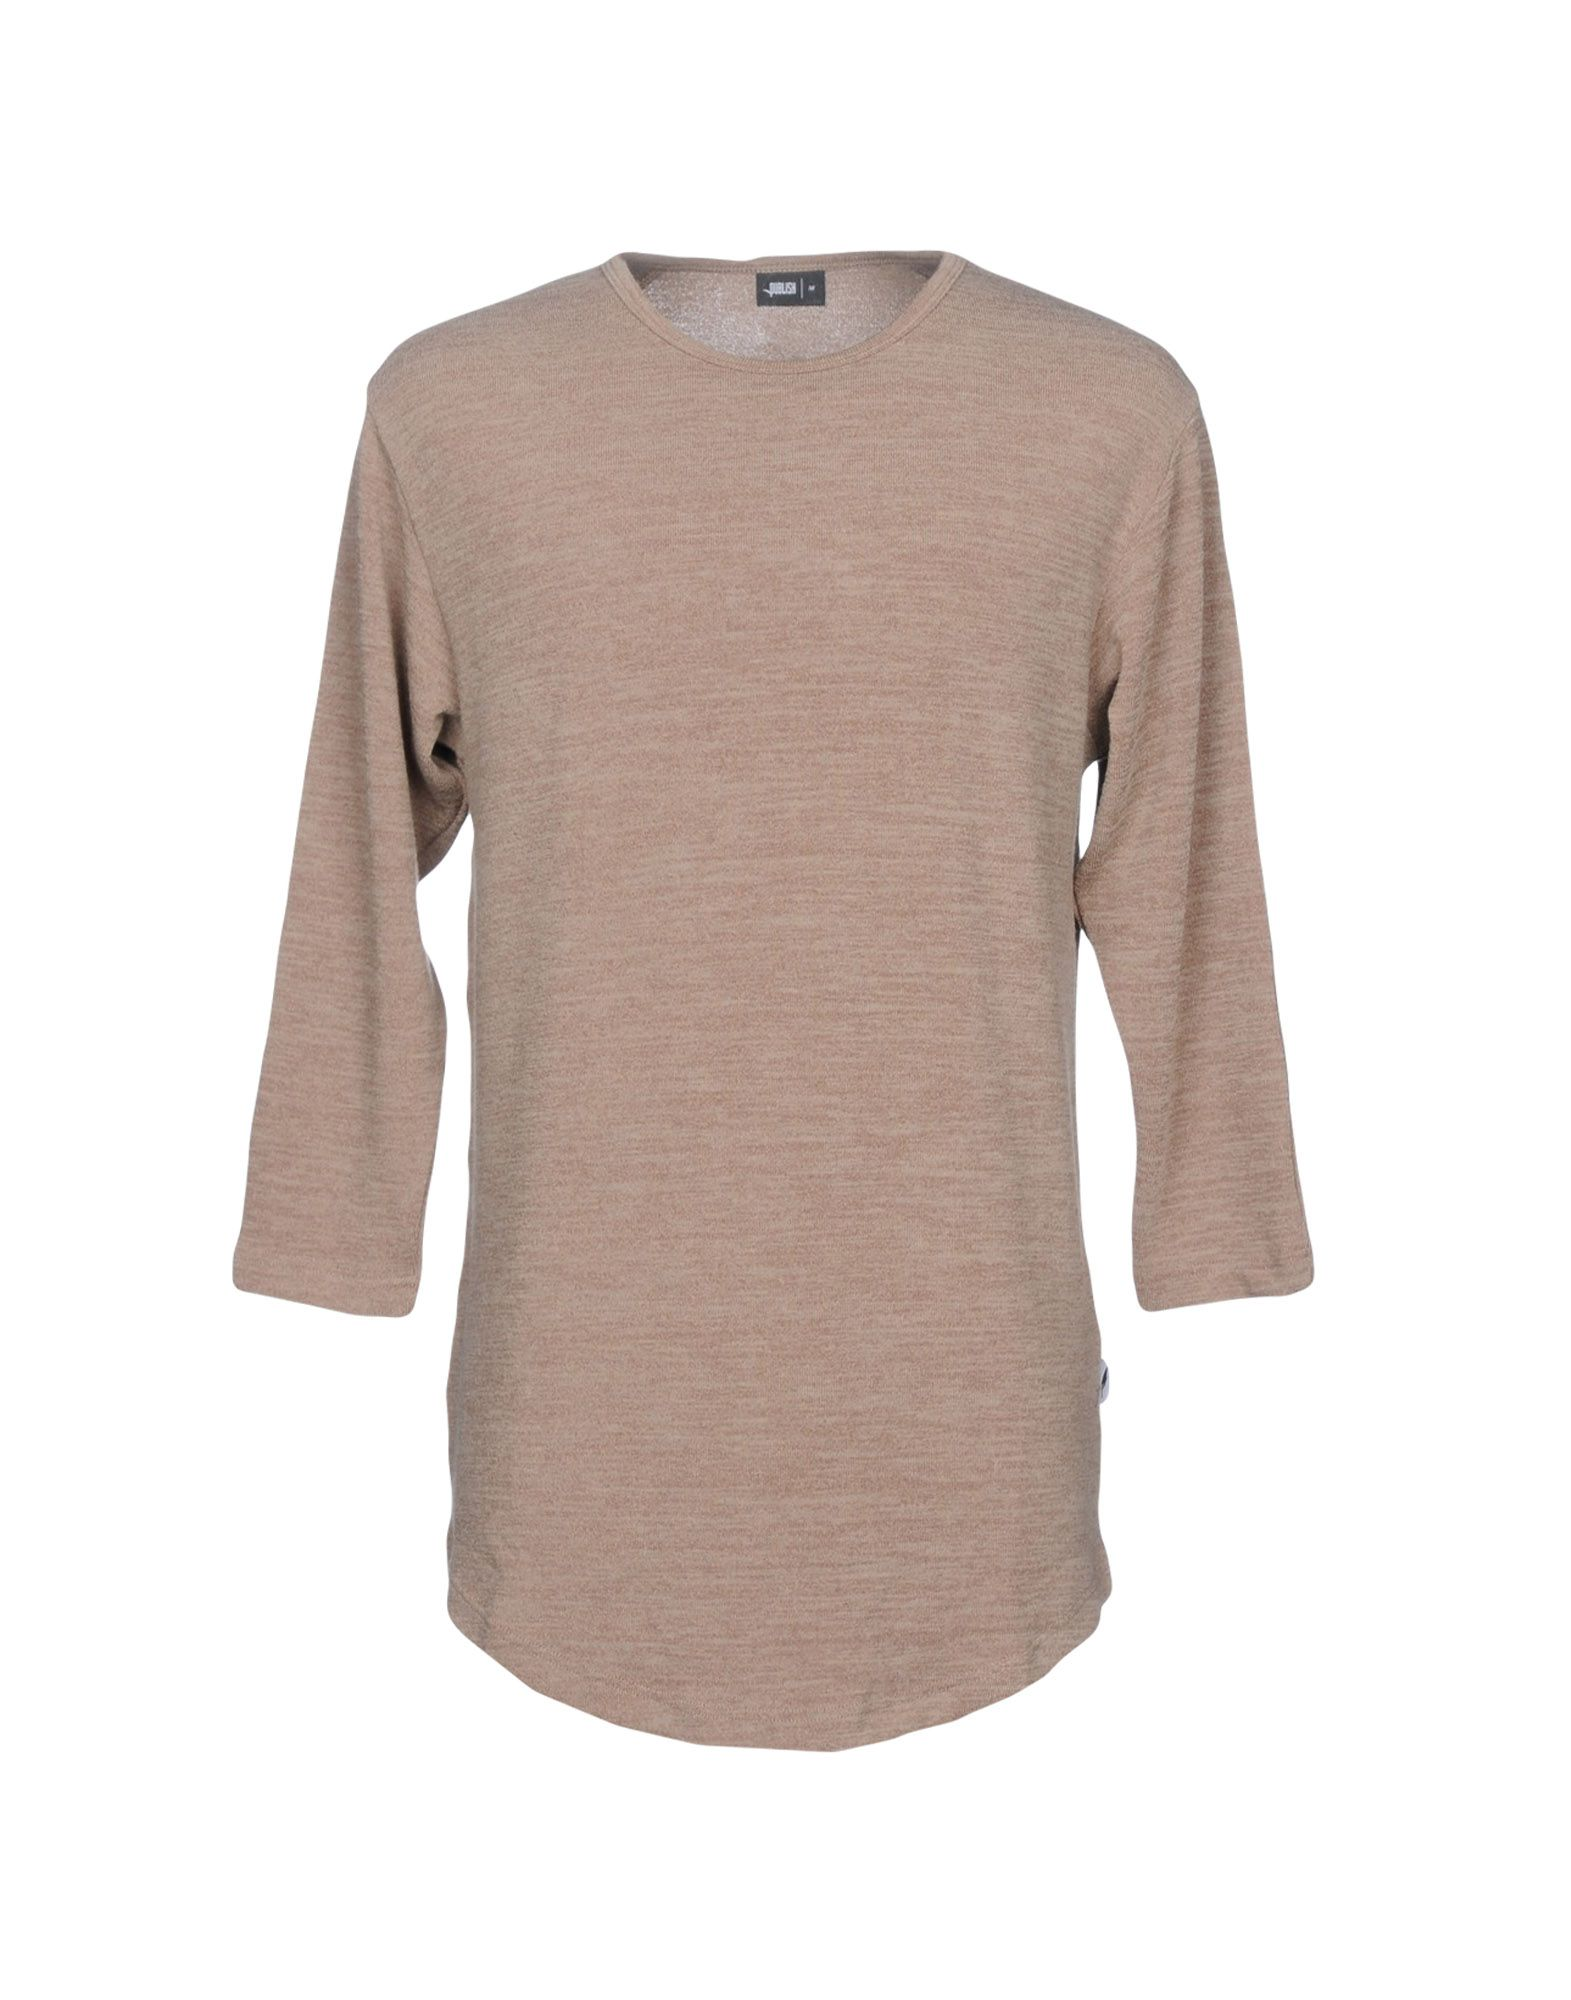 PUBLISH Sweater in Light Brown